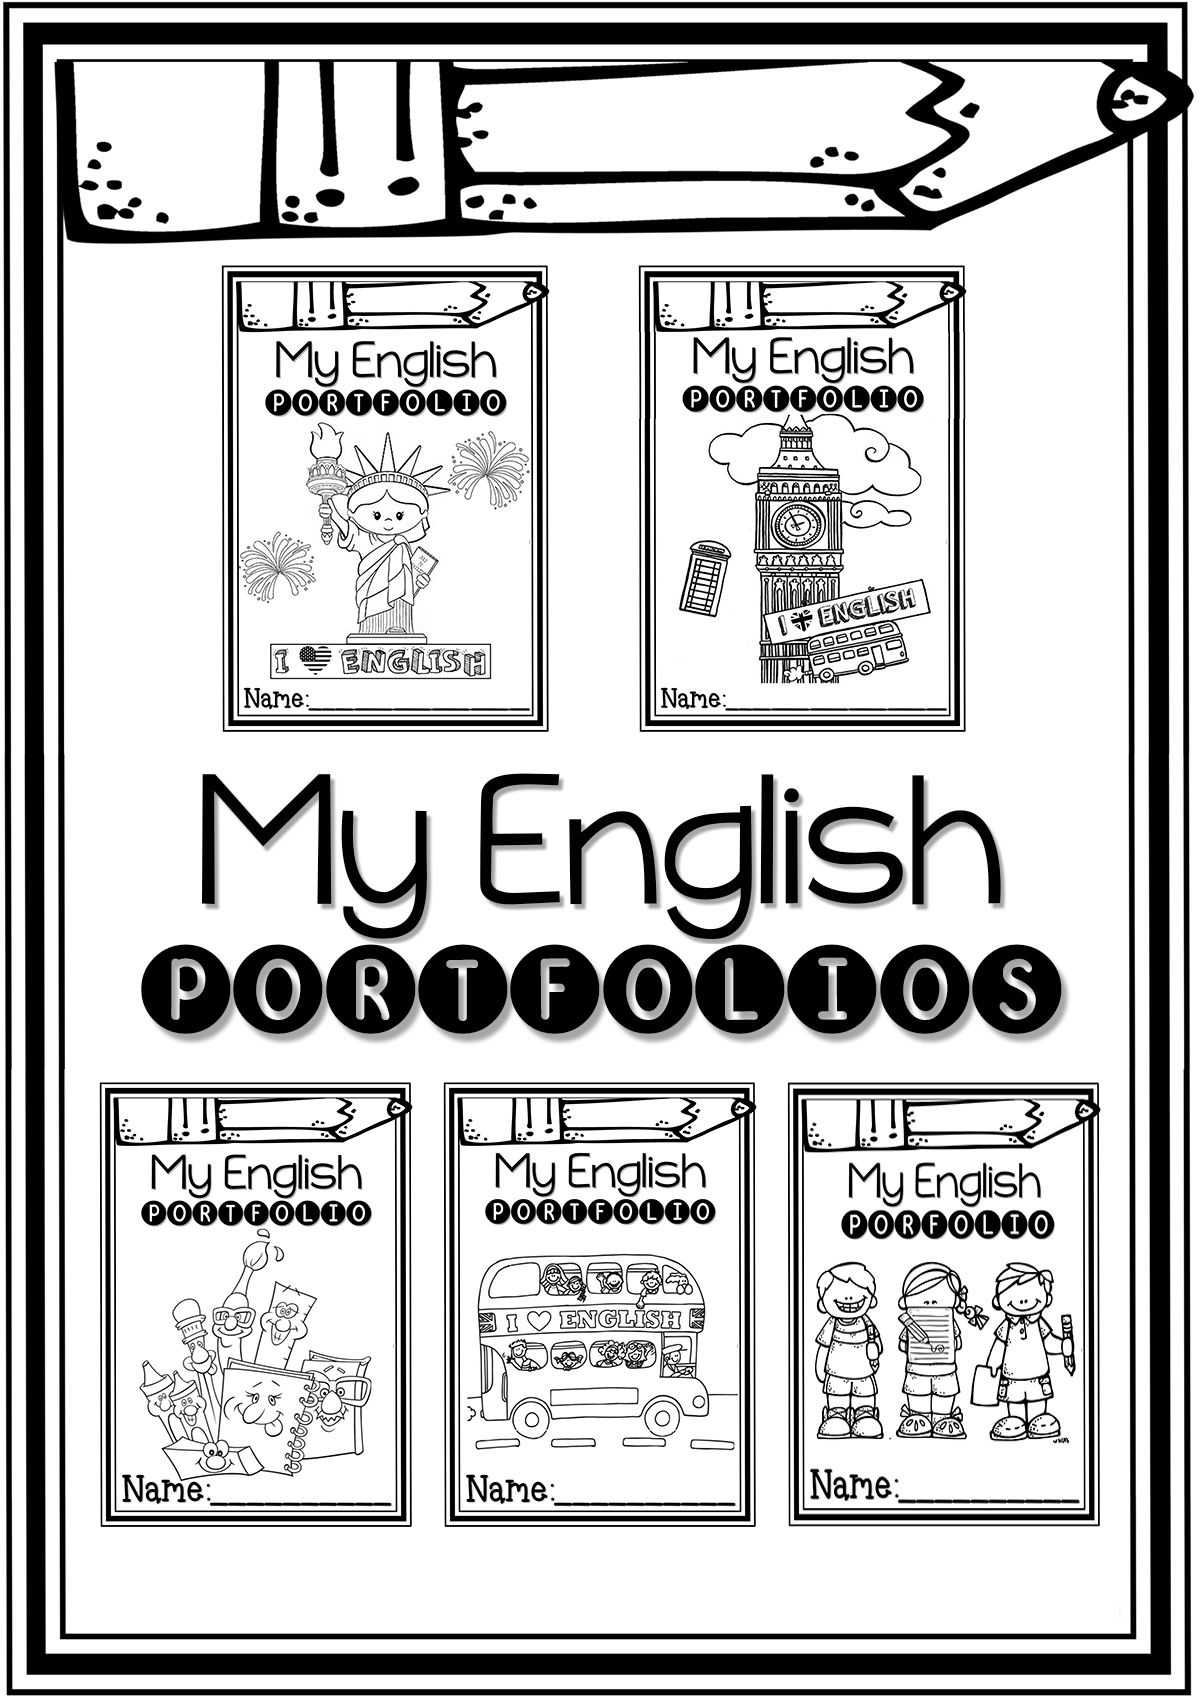 FREE English Portfolio Covers For Young Learners